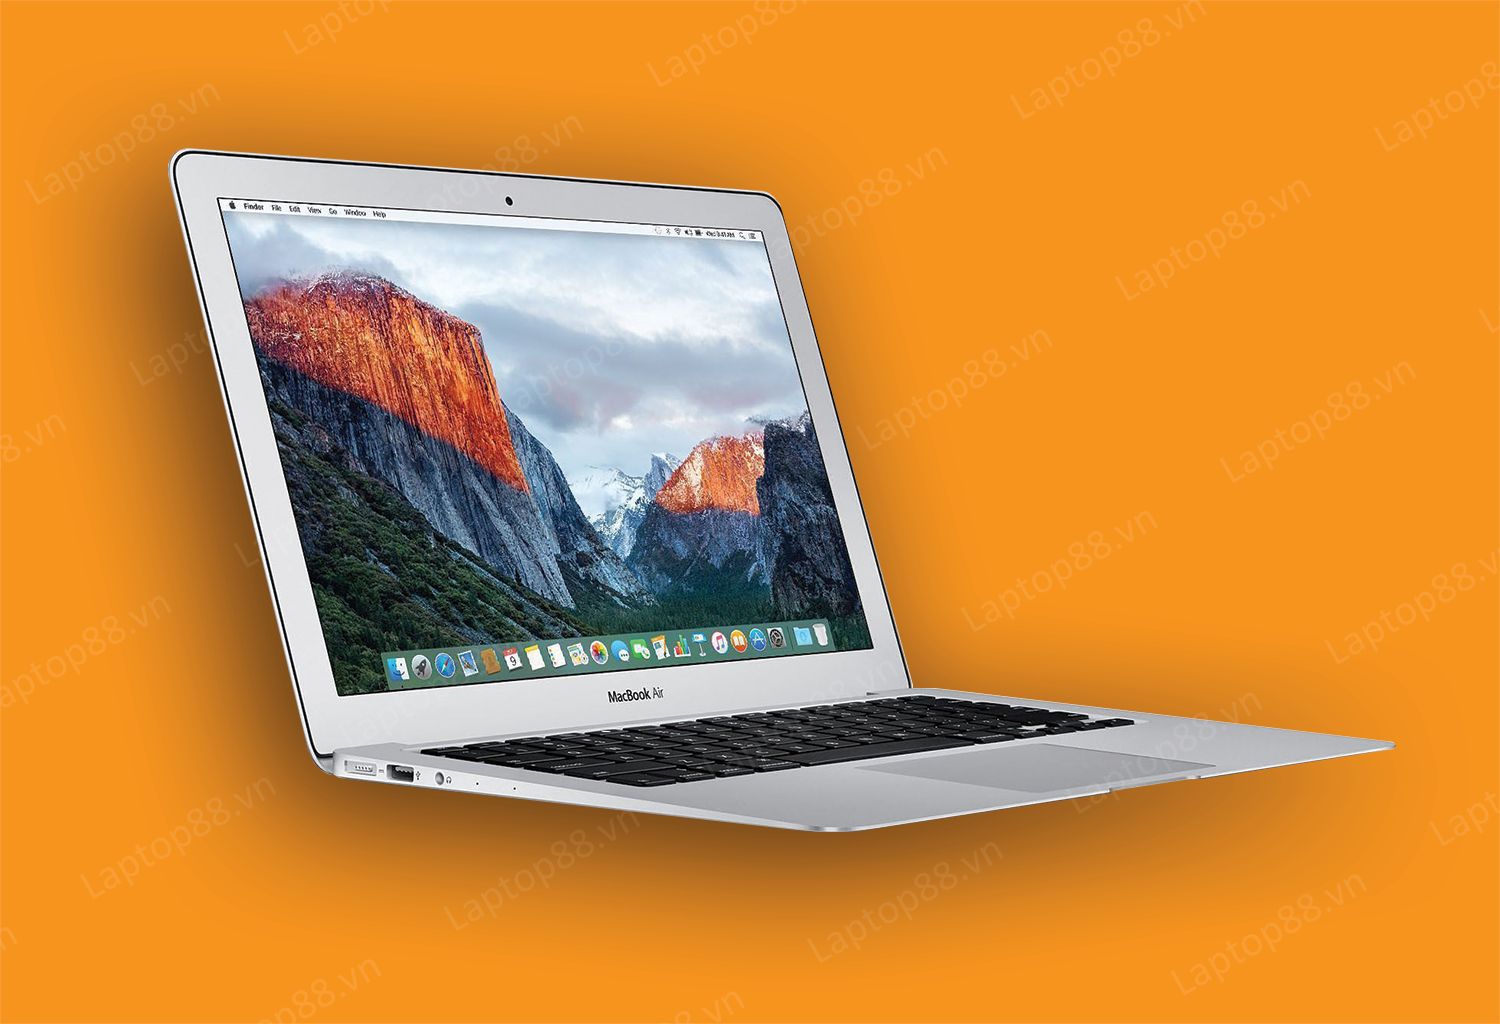 Macbook Air 11.6 2015 - MJVM2 (Intel Core i5, RAM 4GB, SSD 128GB, Intel HD Graphics 6000, 11,6 inch)1